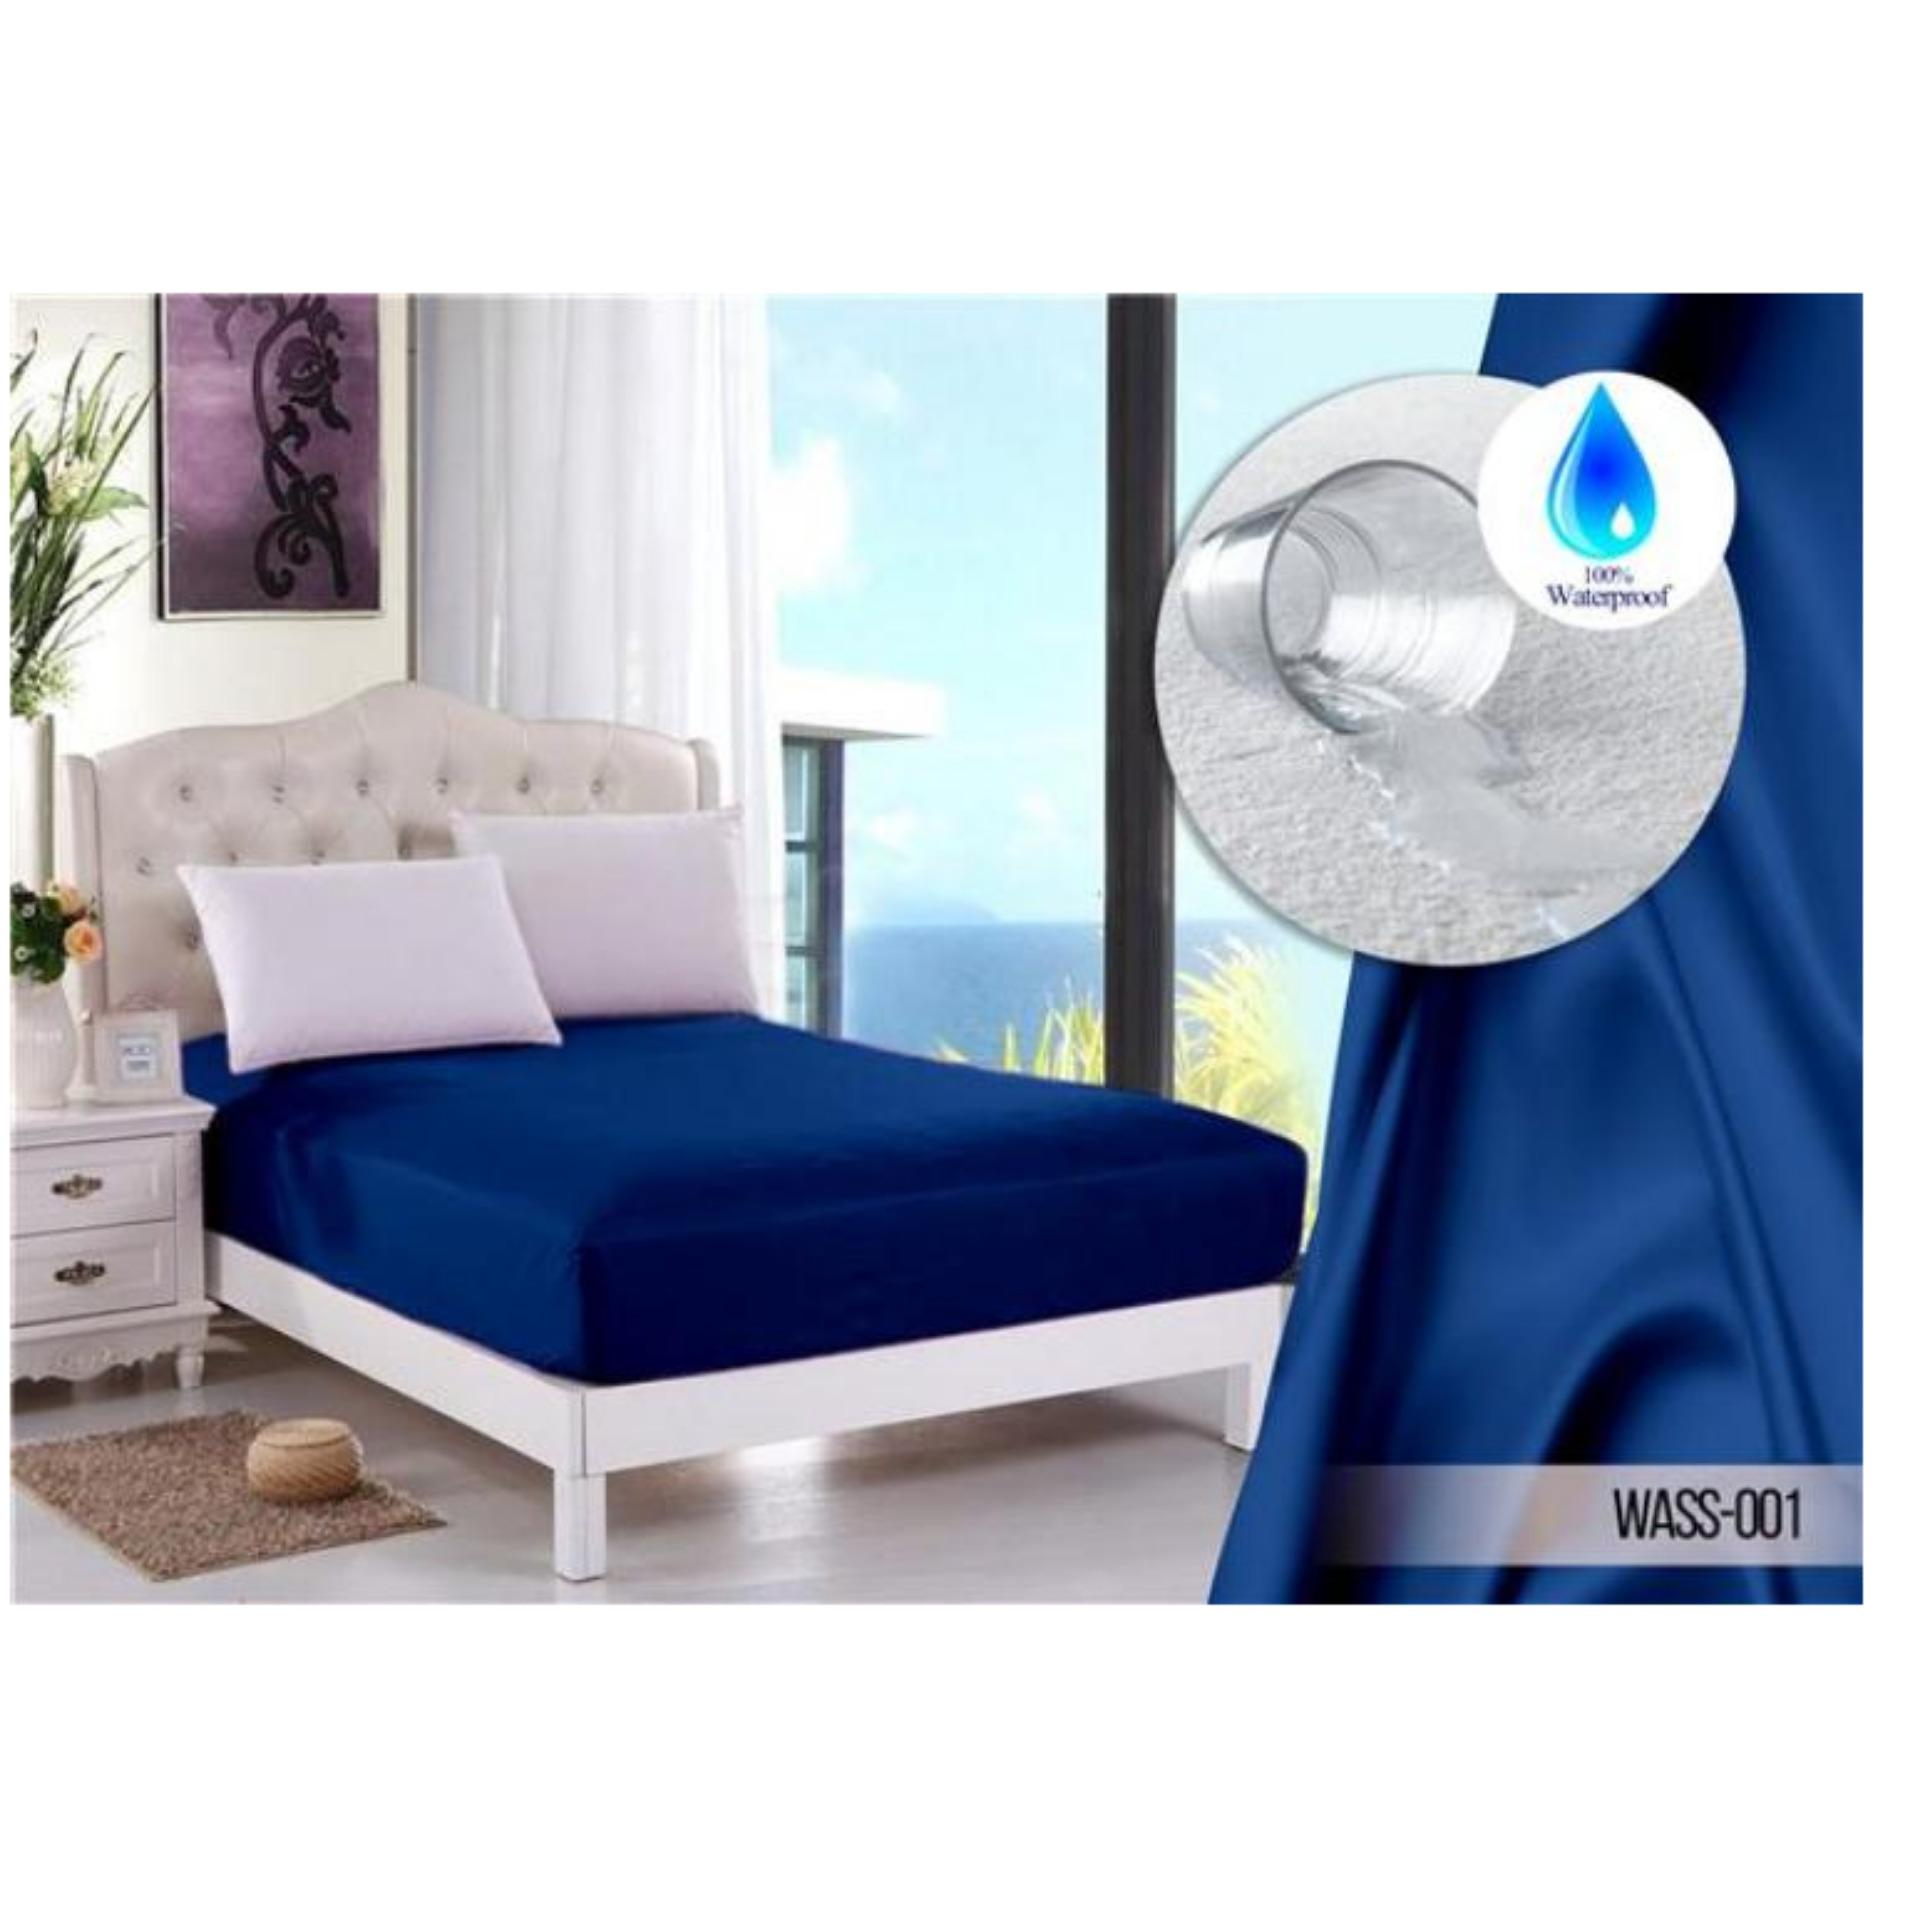 Harga Jaxine Sprei Waterproof Anti Air Biru Tua Terbaru